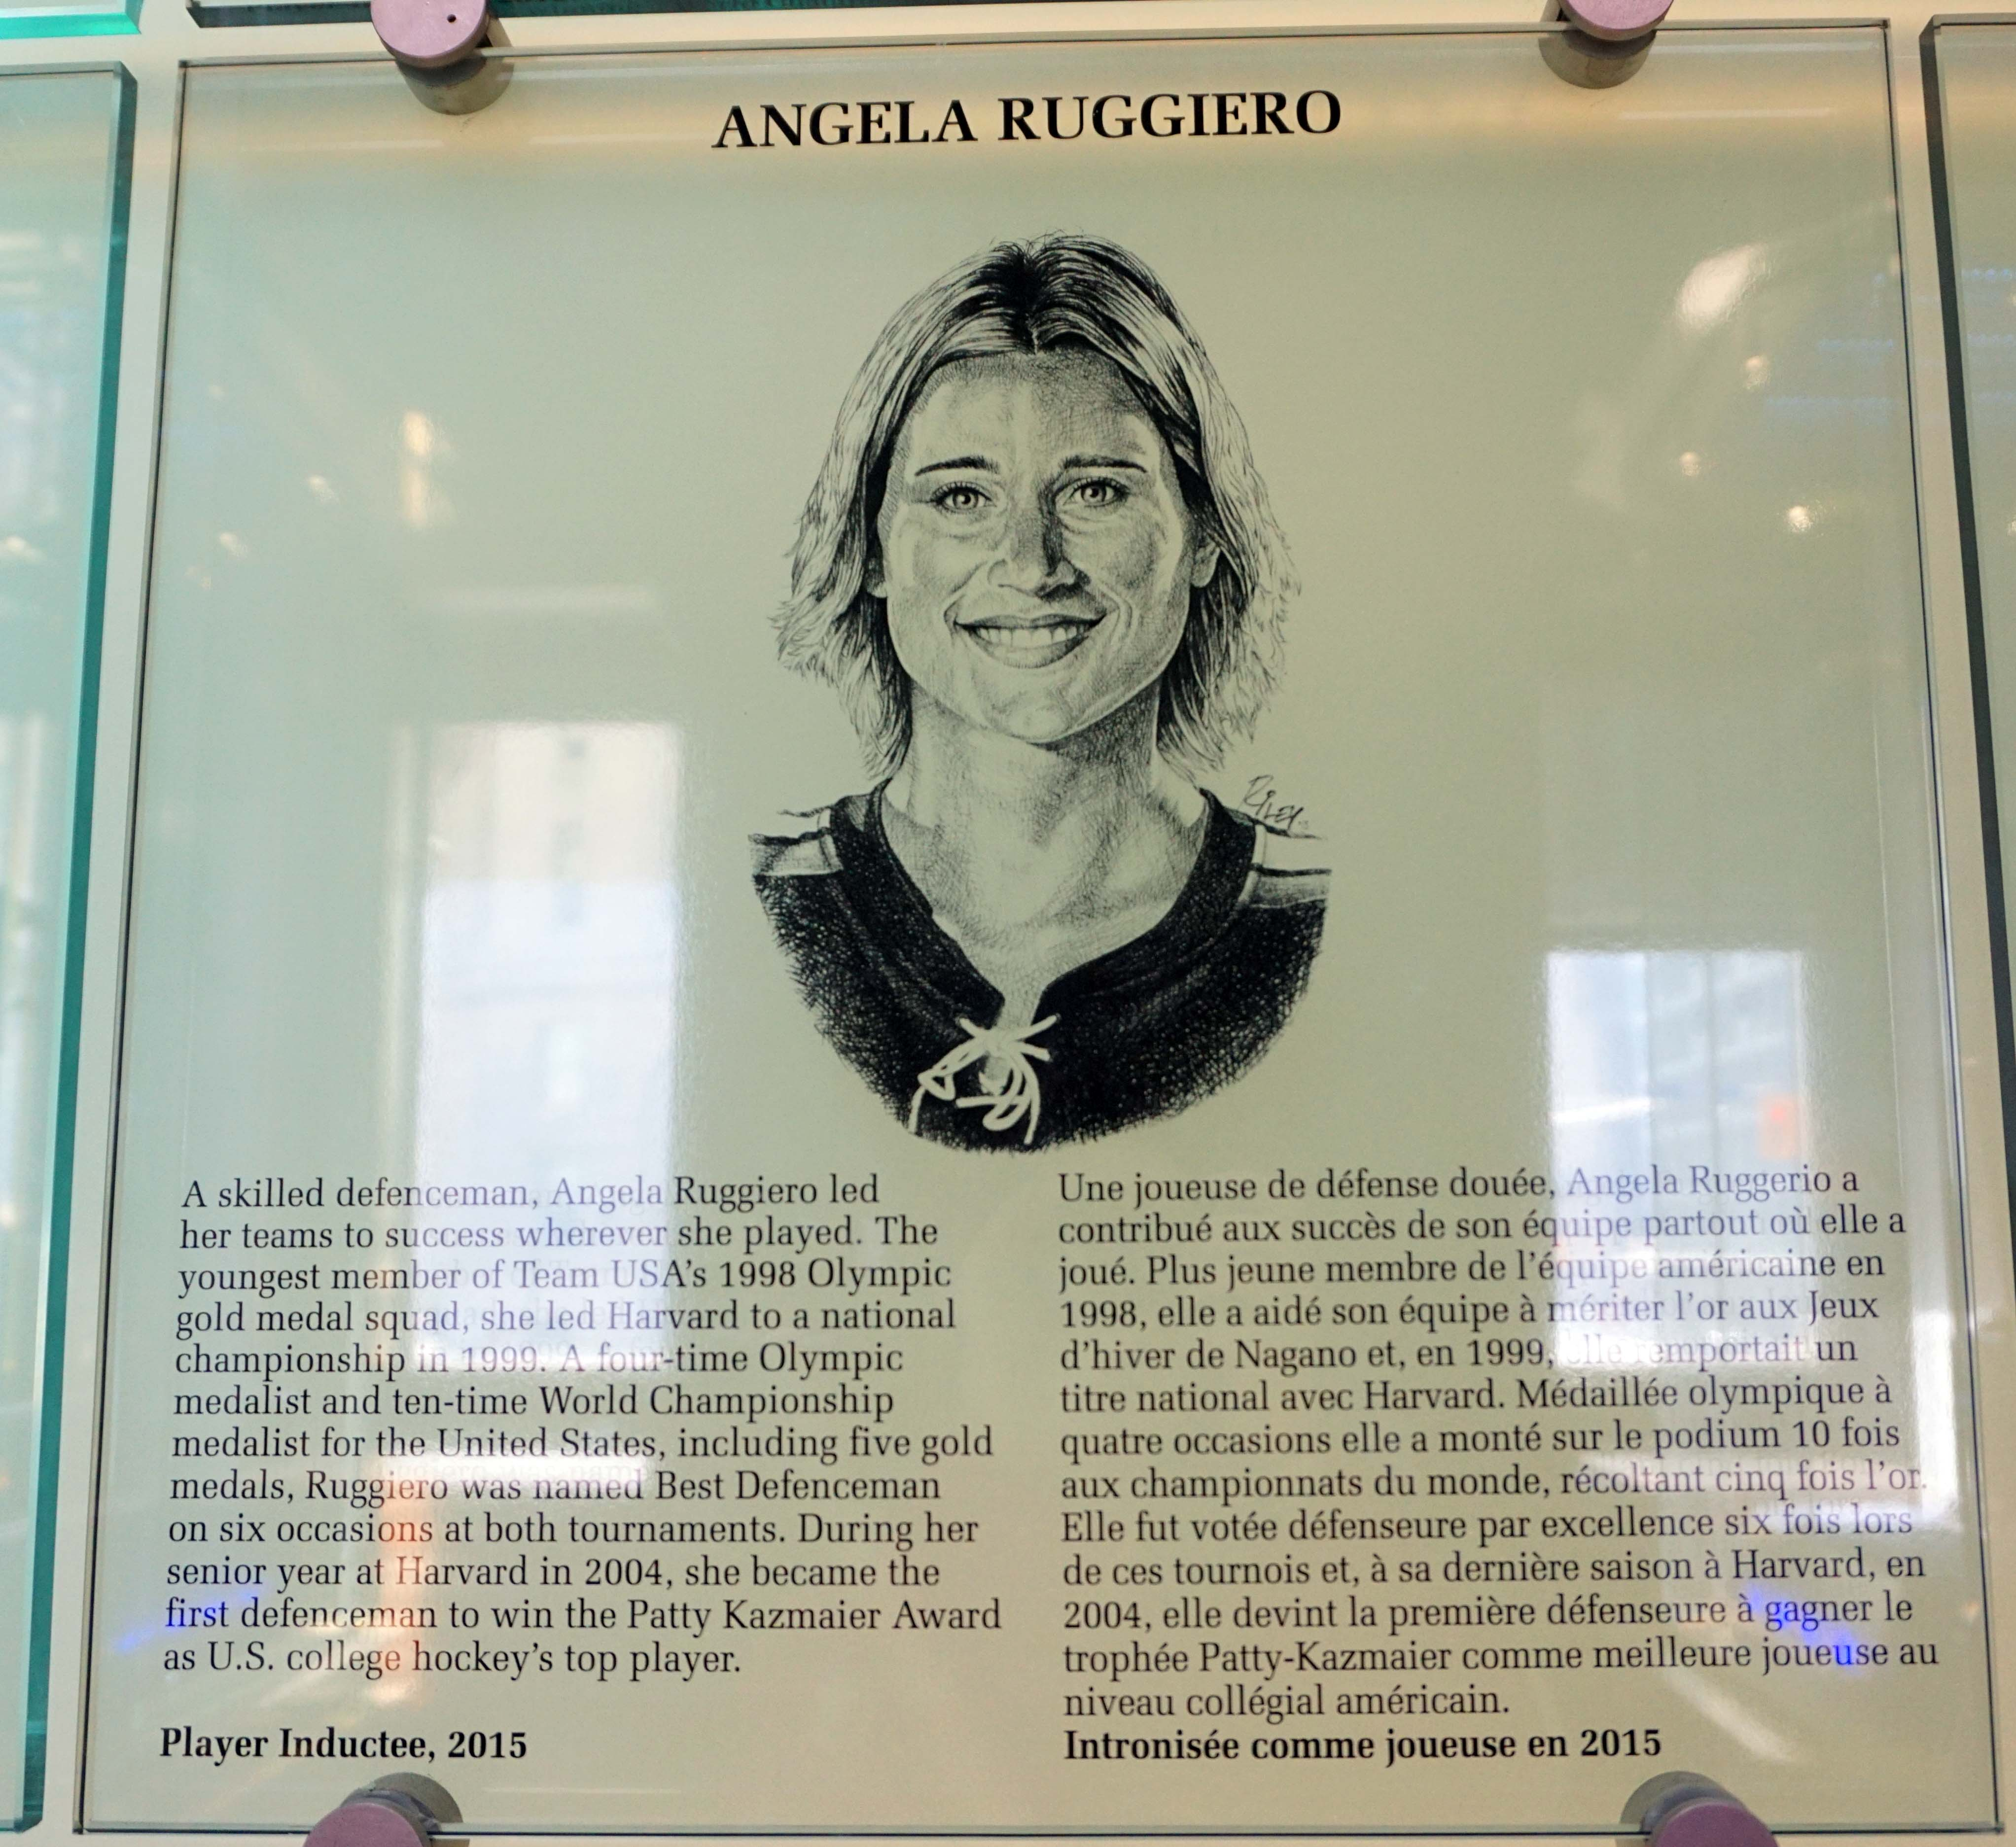 Angela Ruggiero's plaque in the Hockey Hall of Fame